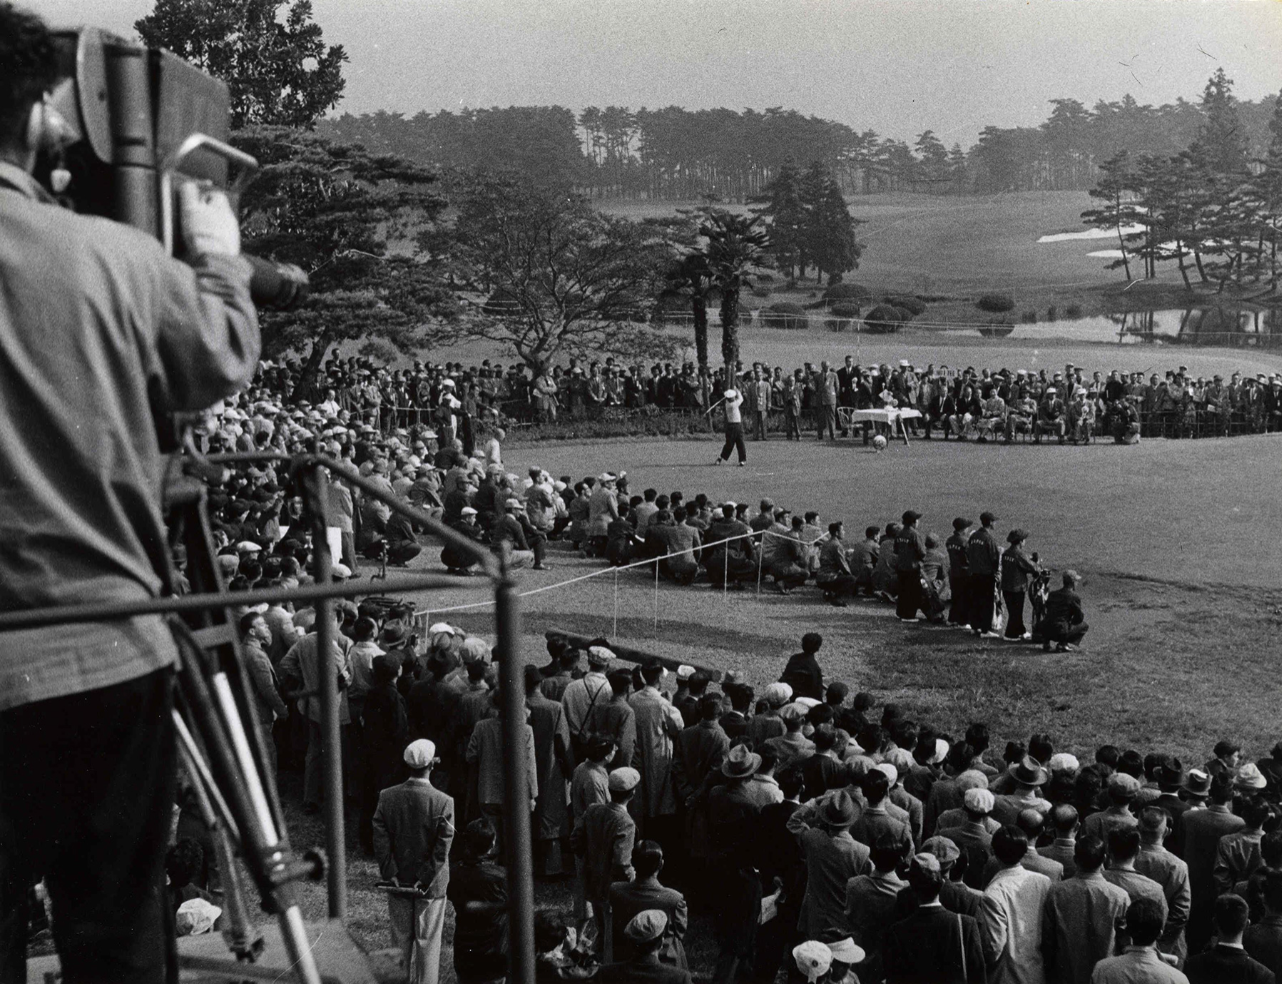 The 1957 Canada Cup was the first major golf event held on the Kasumigaseki course.  Photo: kasumigasekicc